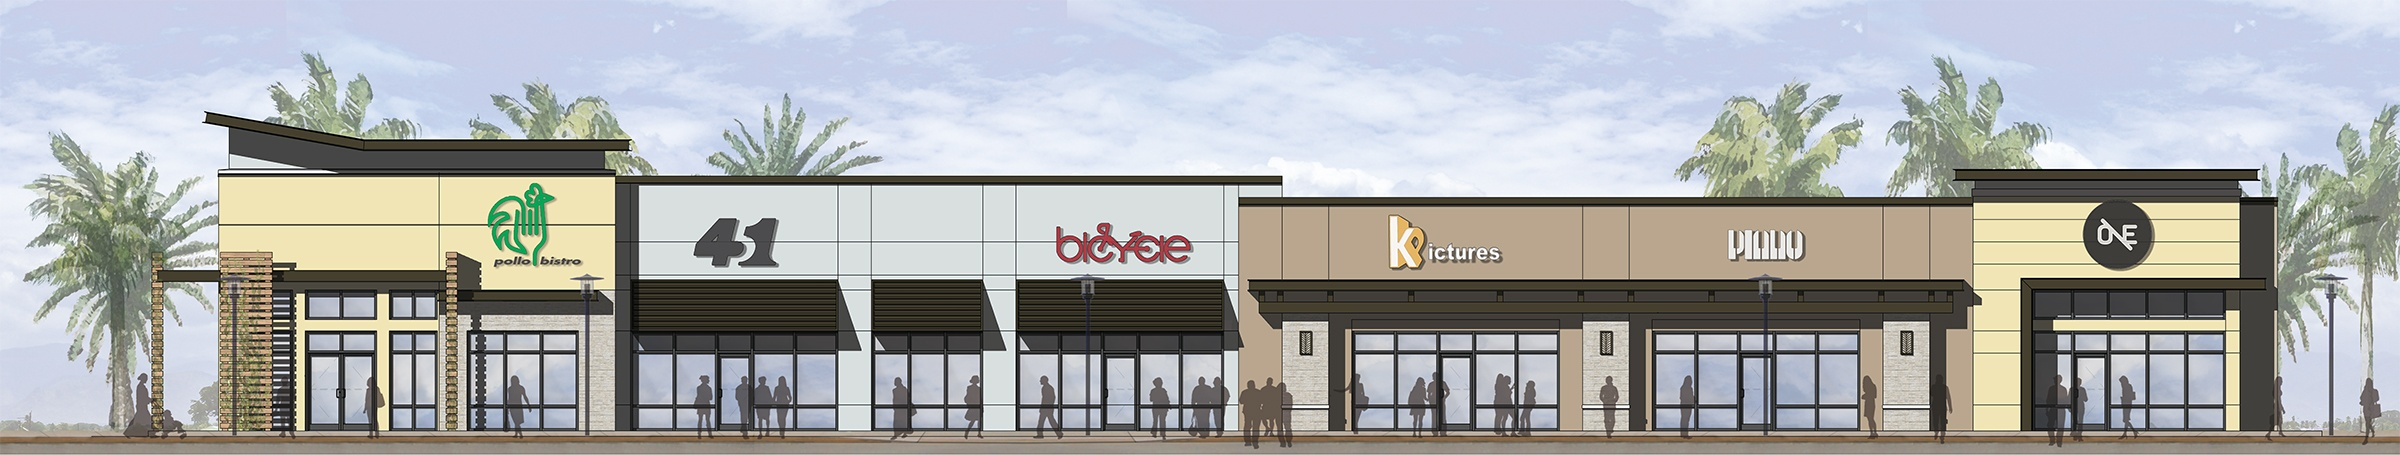 Rendering of a variety of storefronts